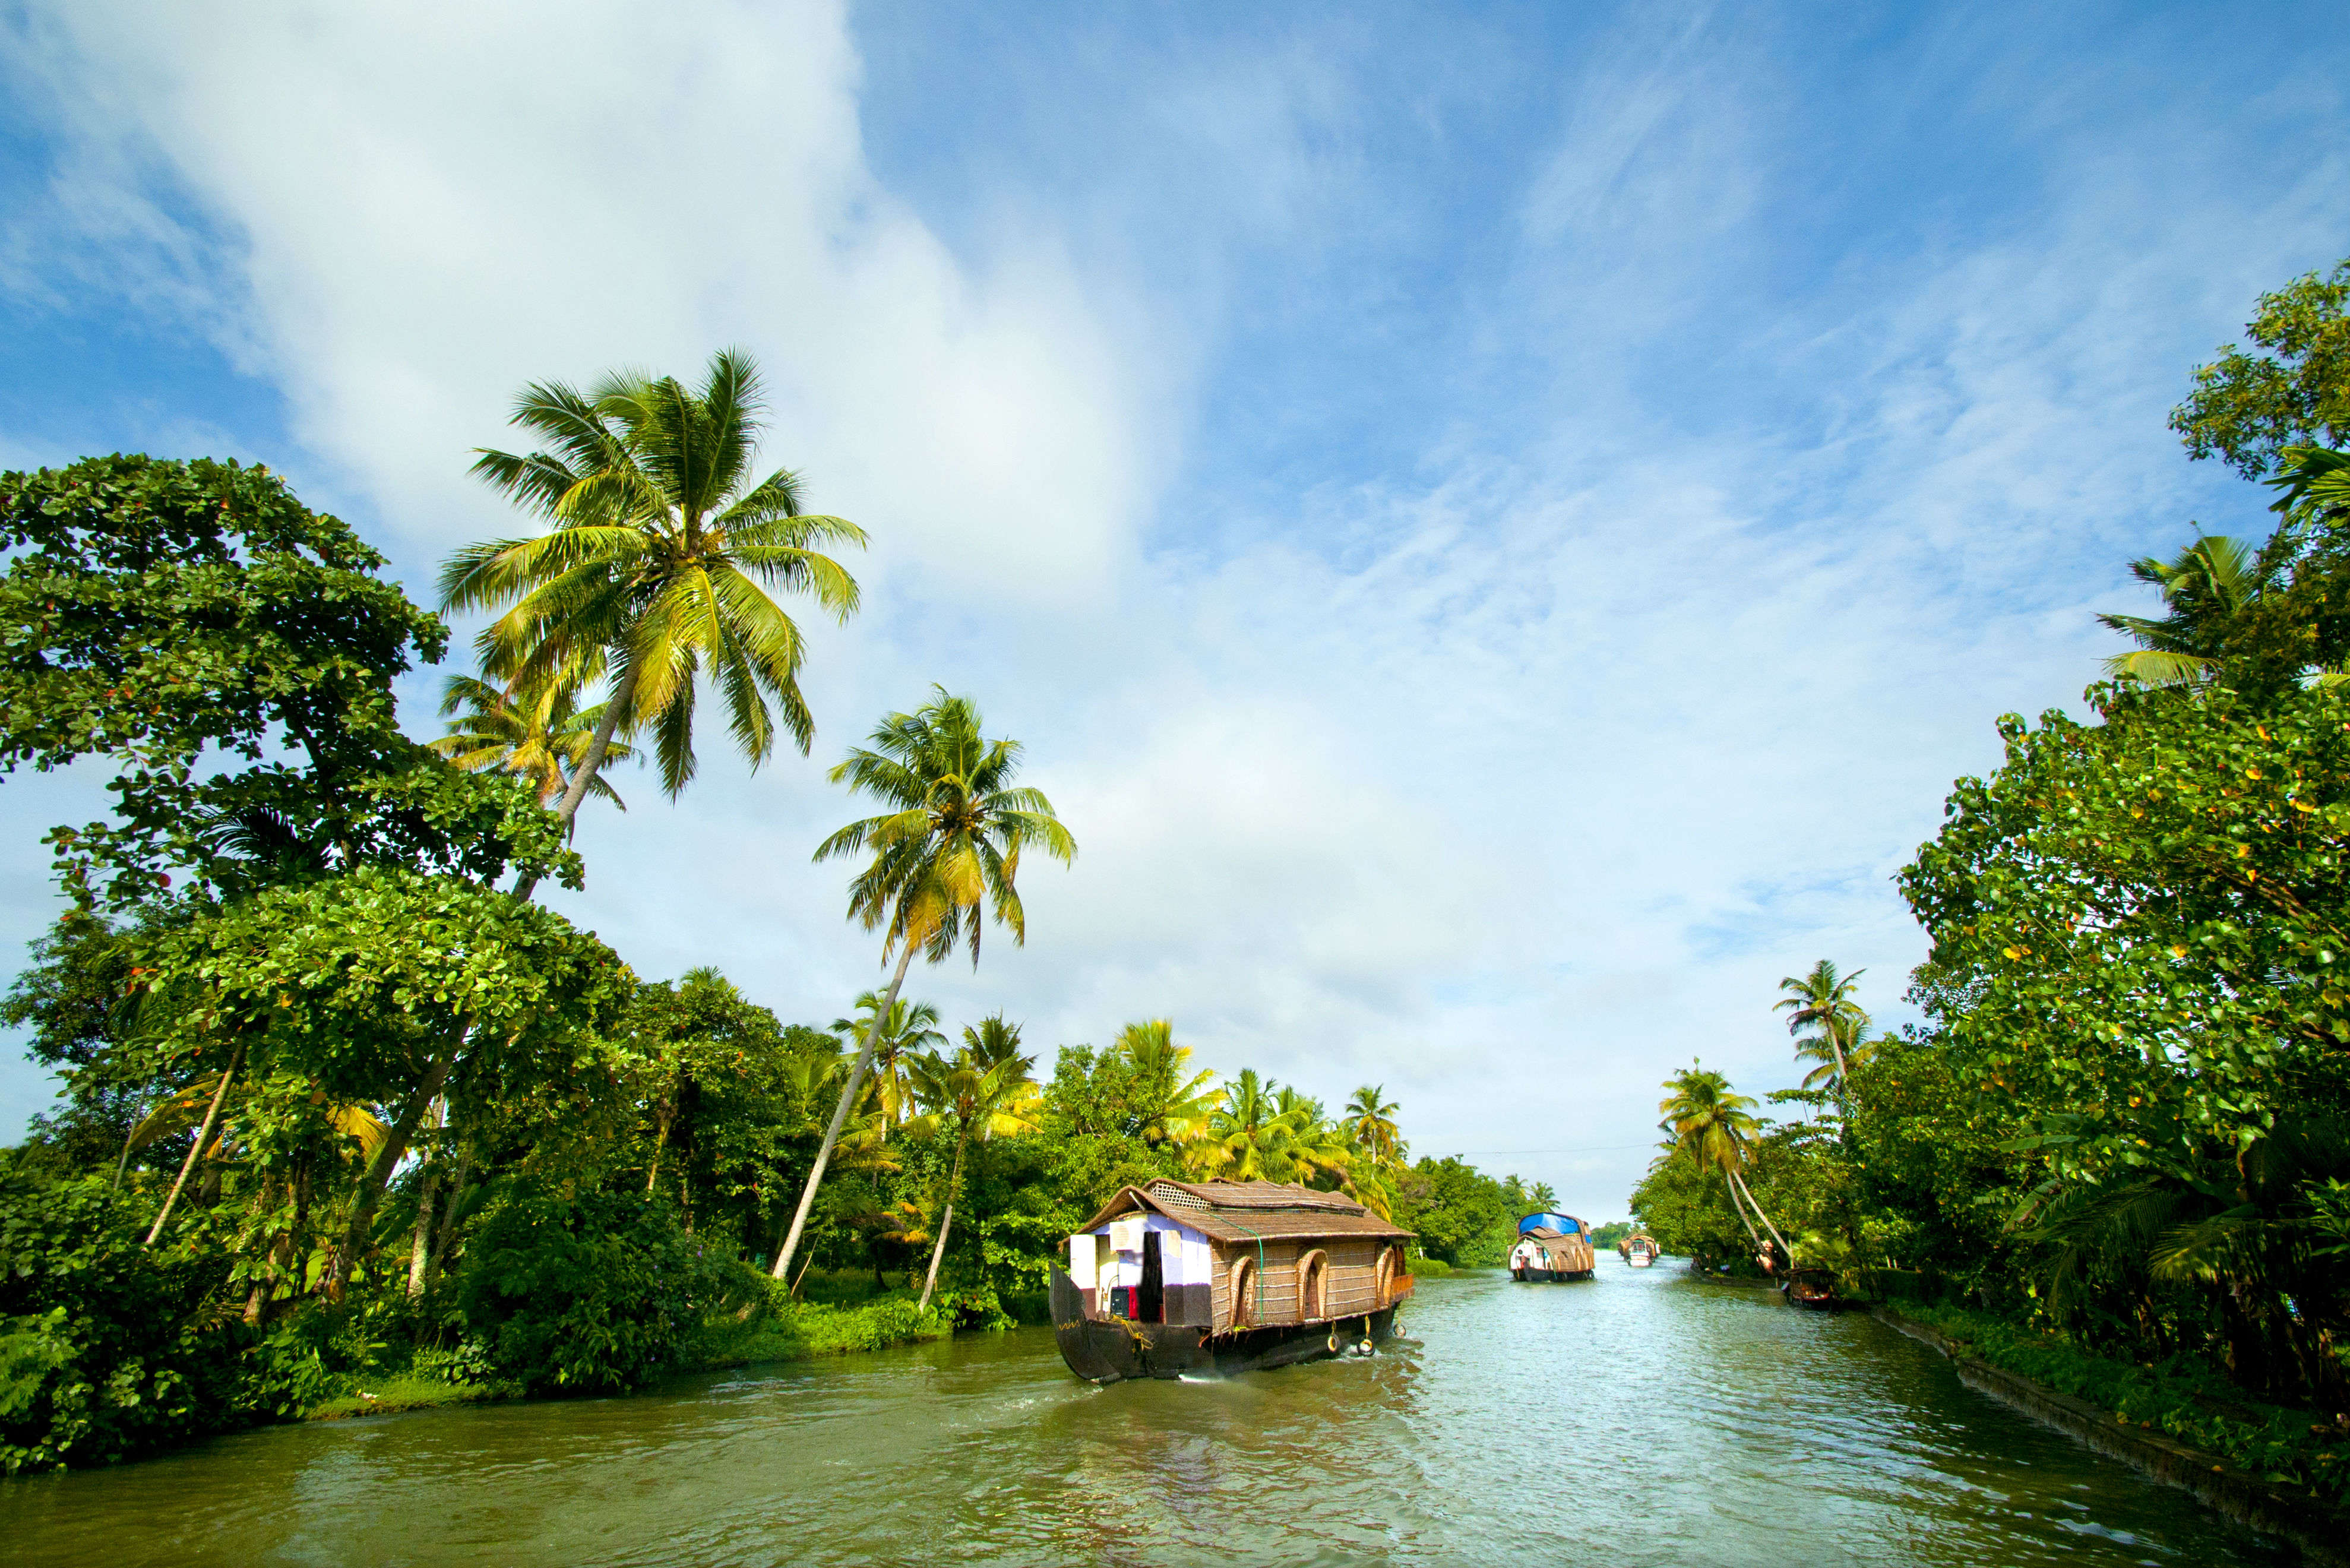 IRCTC launches all new Kerala tour package for the discerning traveller